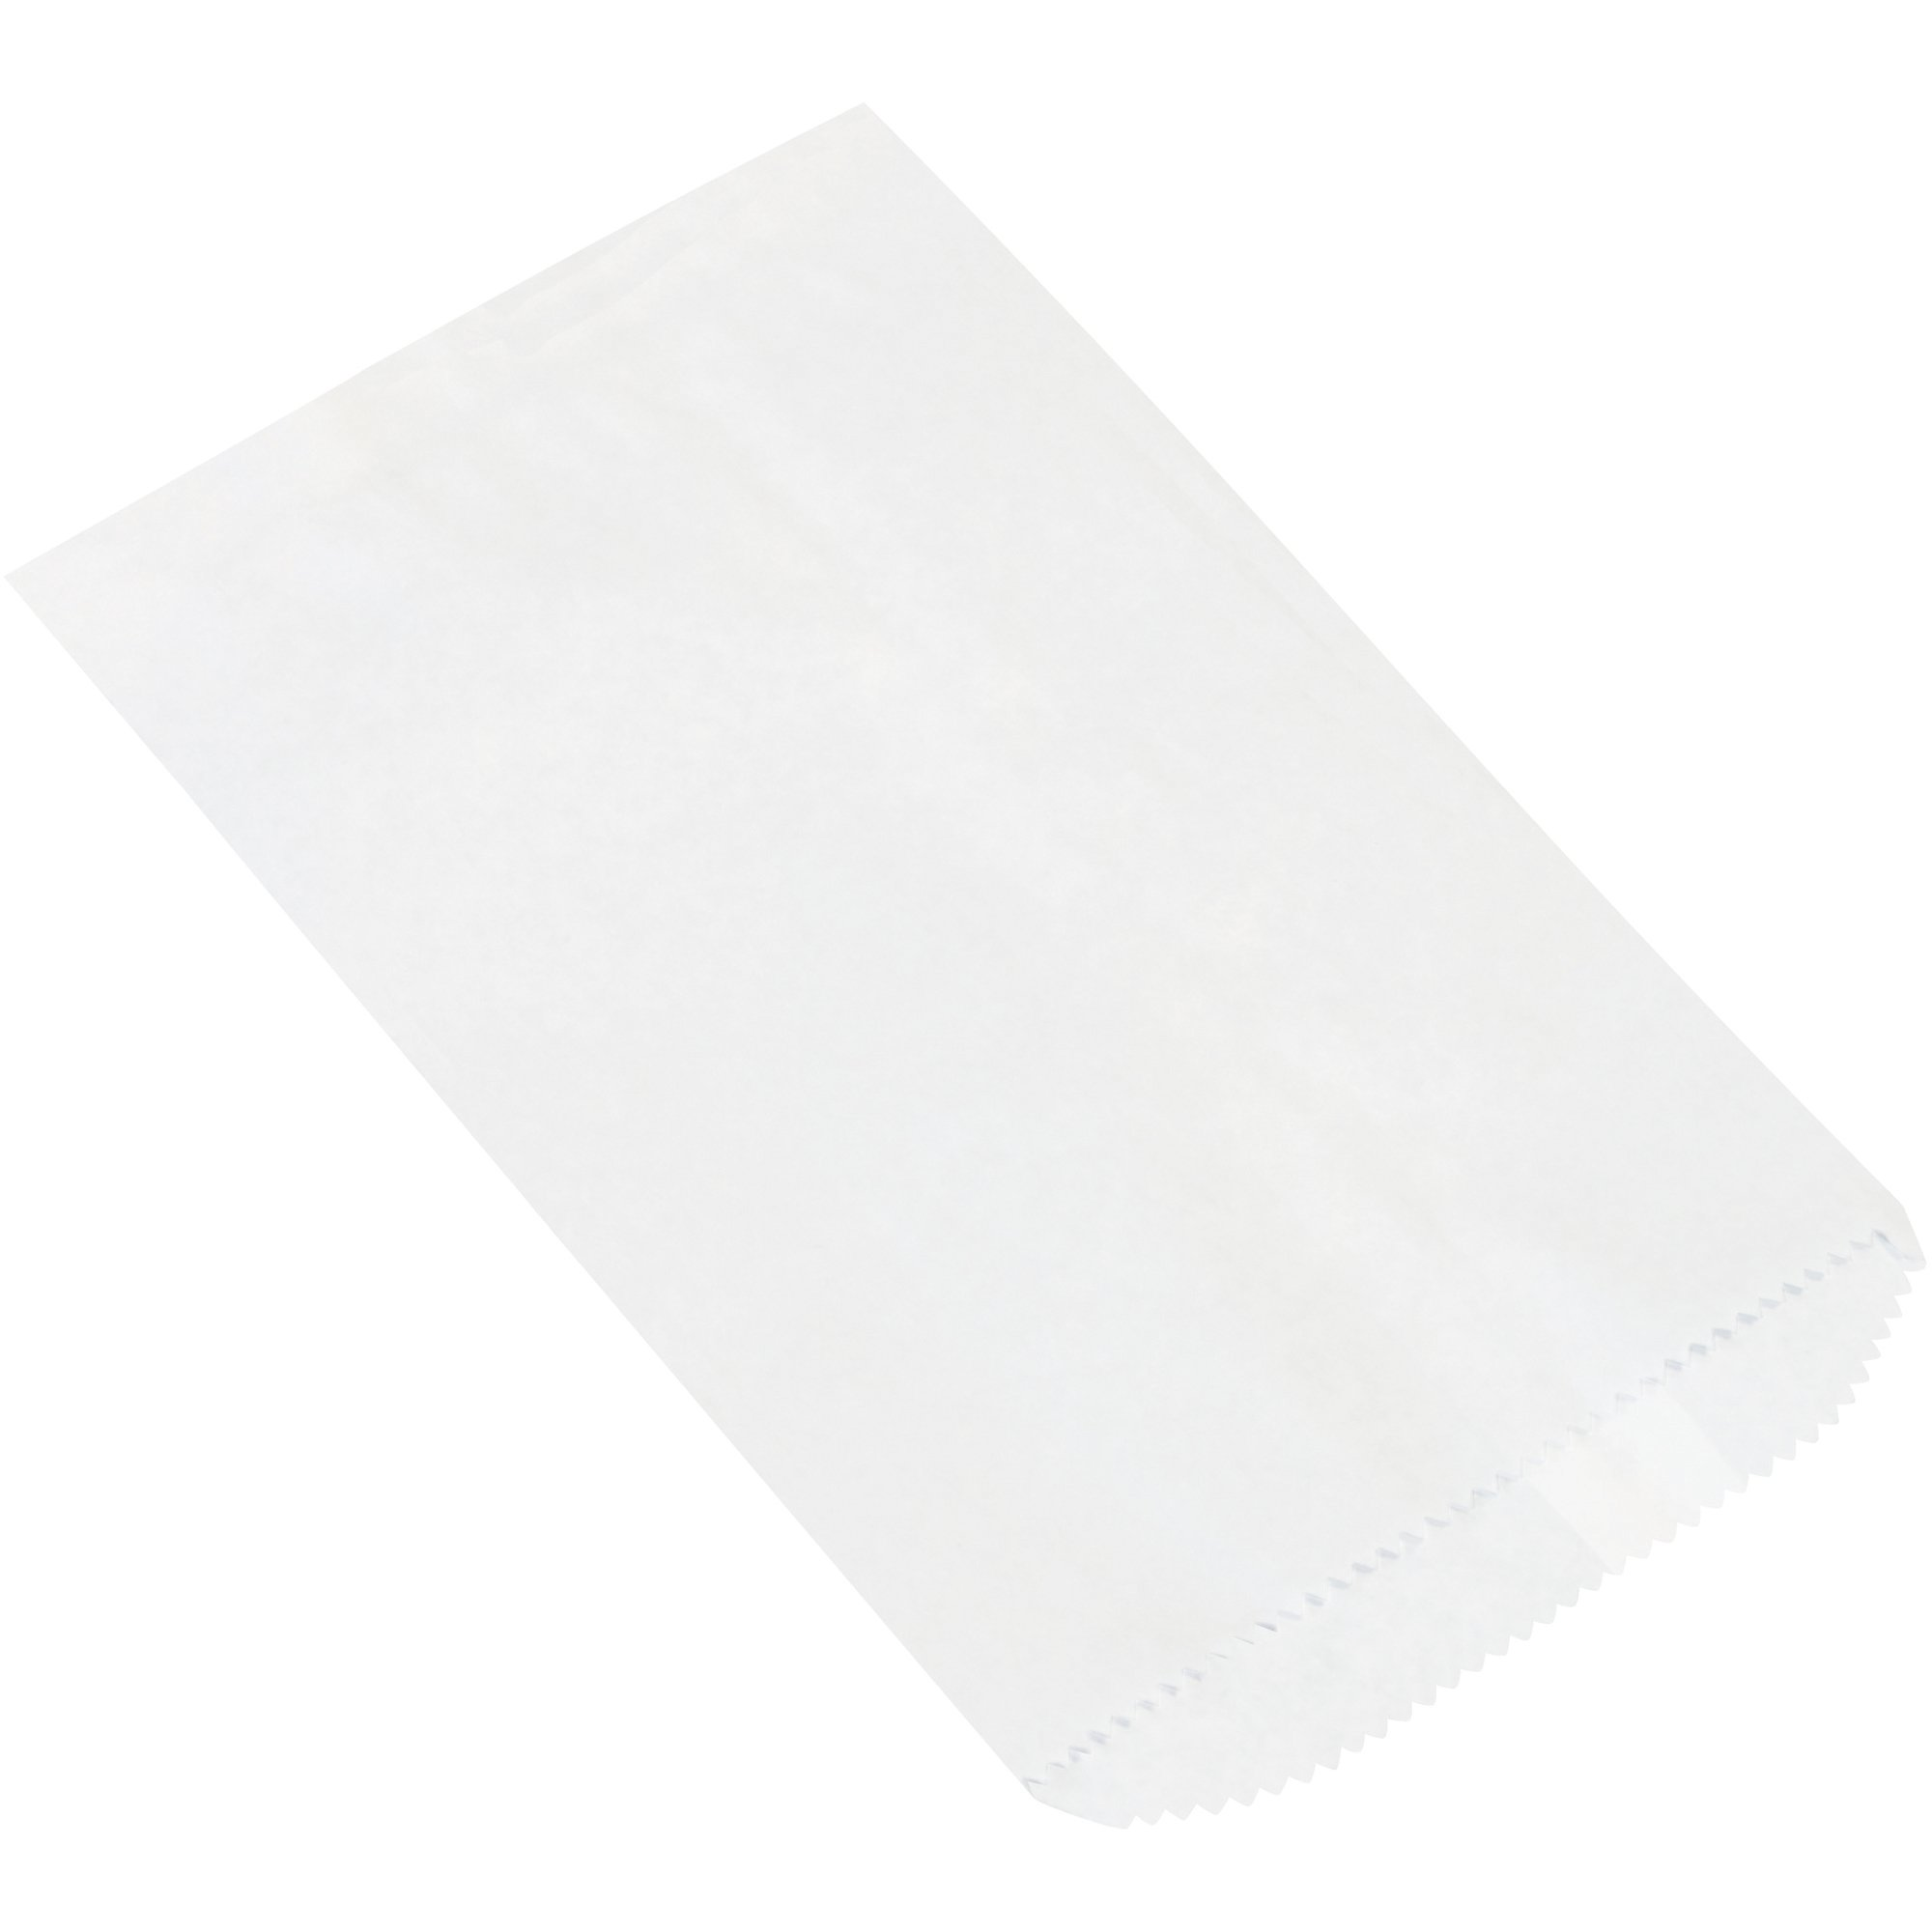 Flat Merchandise Bags, 6 1/4'' x 9 1/4'', White, 3000/Case by Choice Shipping Supplies (Image #1)